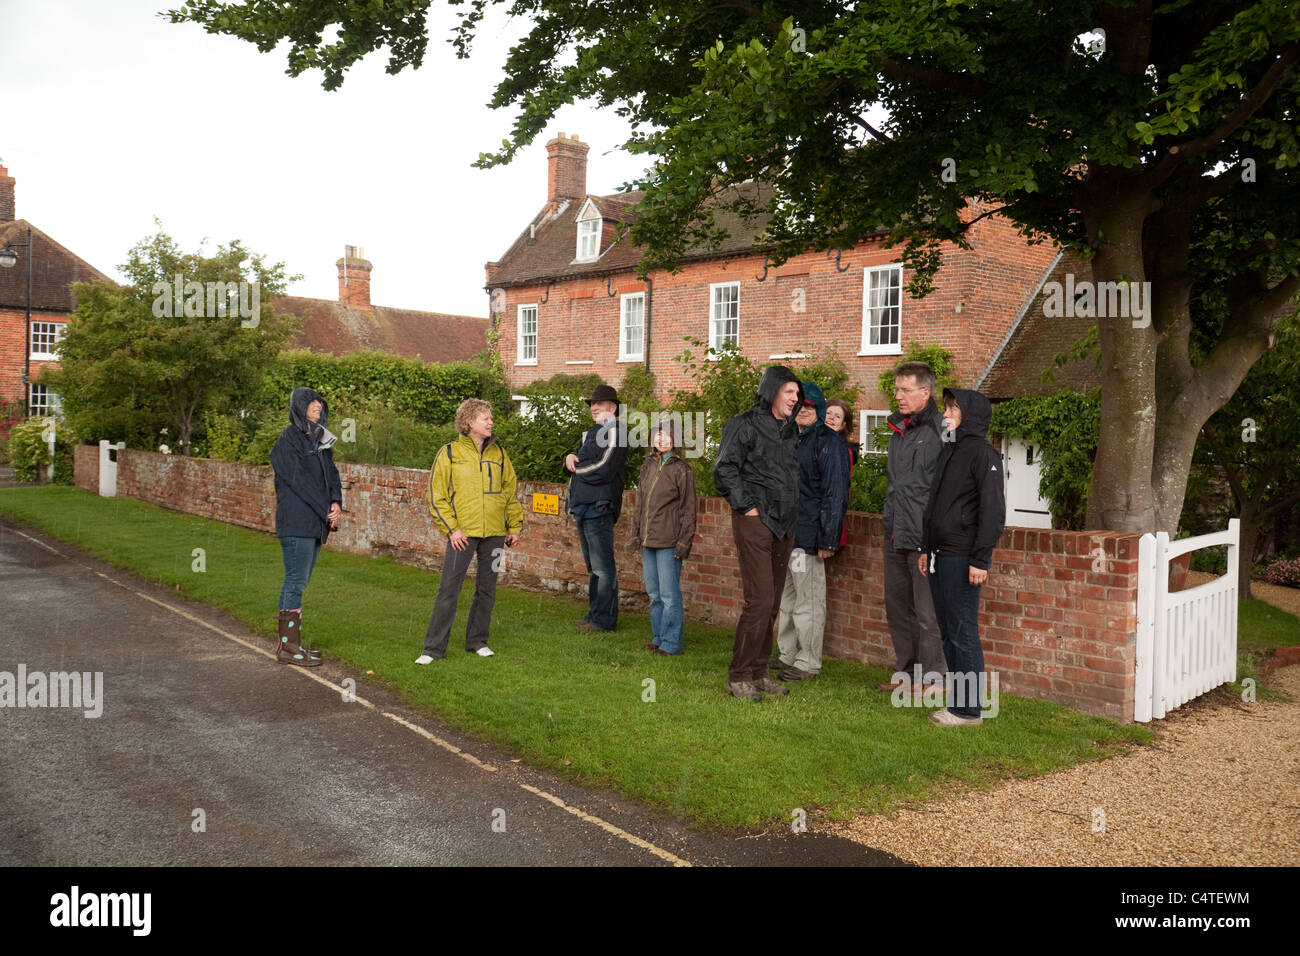 A group of people sheltering under a tree from the rain - Stock Image